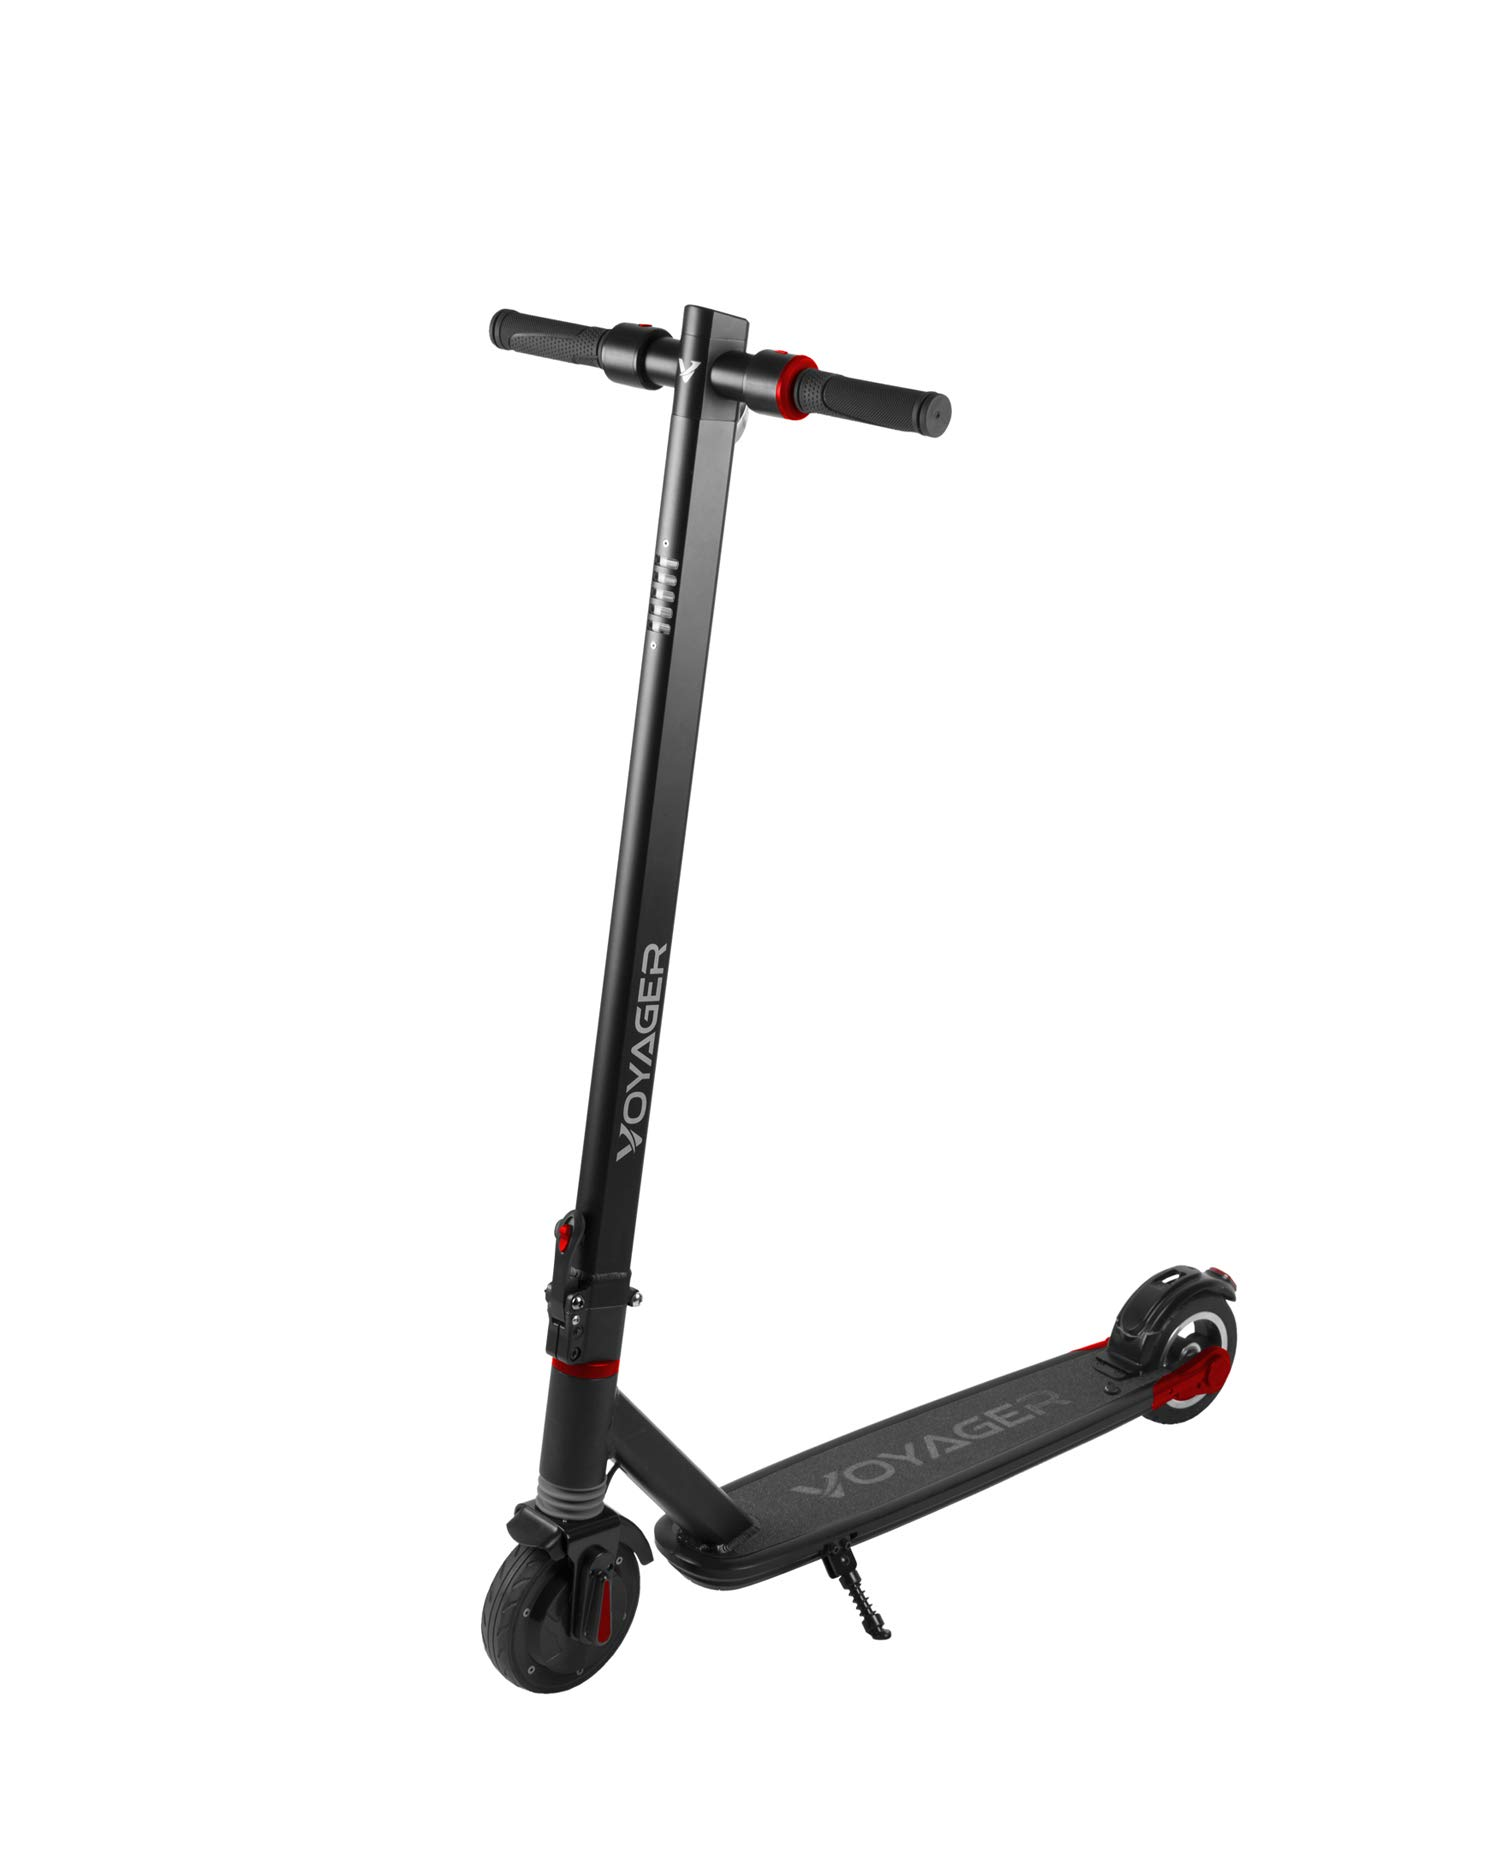 Voyager Ion Foldable Electric Scooter with LCD Display, LED Headlight, 12.5 MPH Max Speed, Long Range Battery up to 7 Miles by VOYAGER